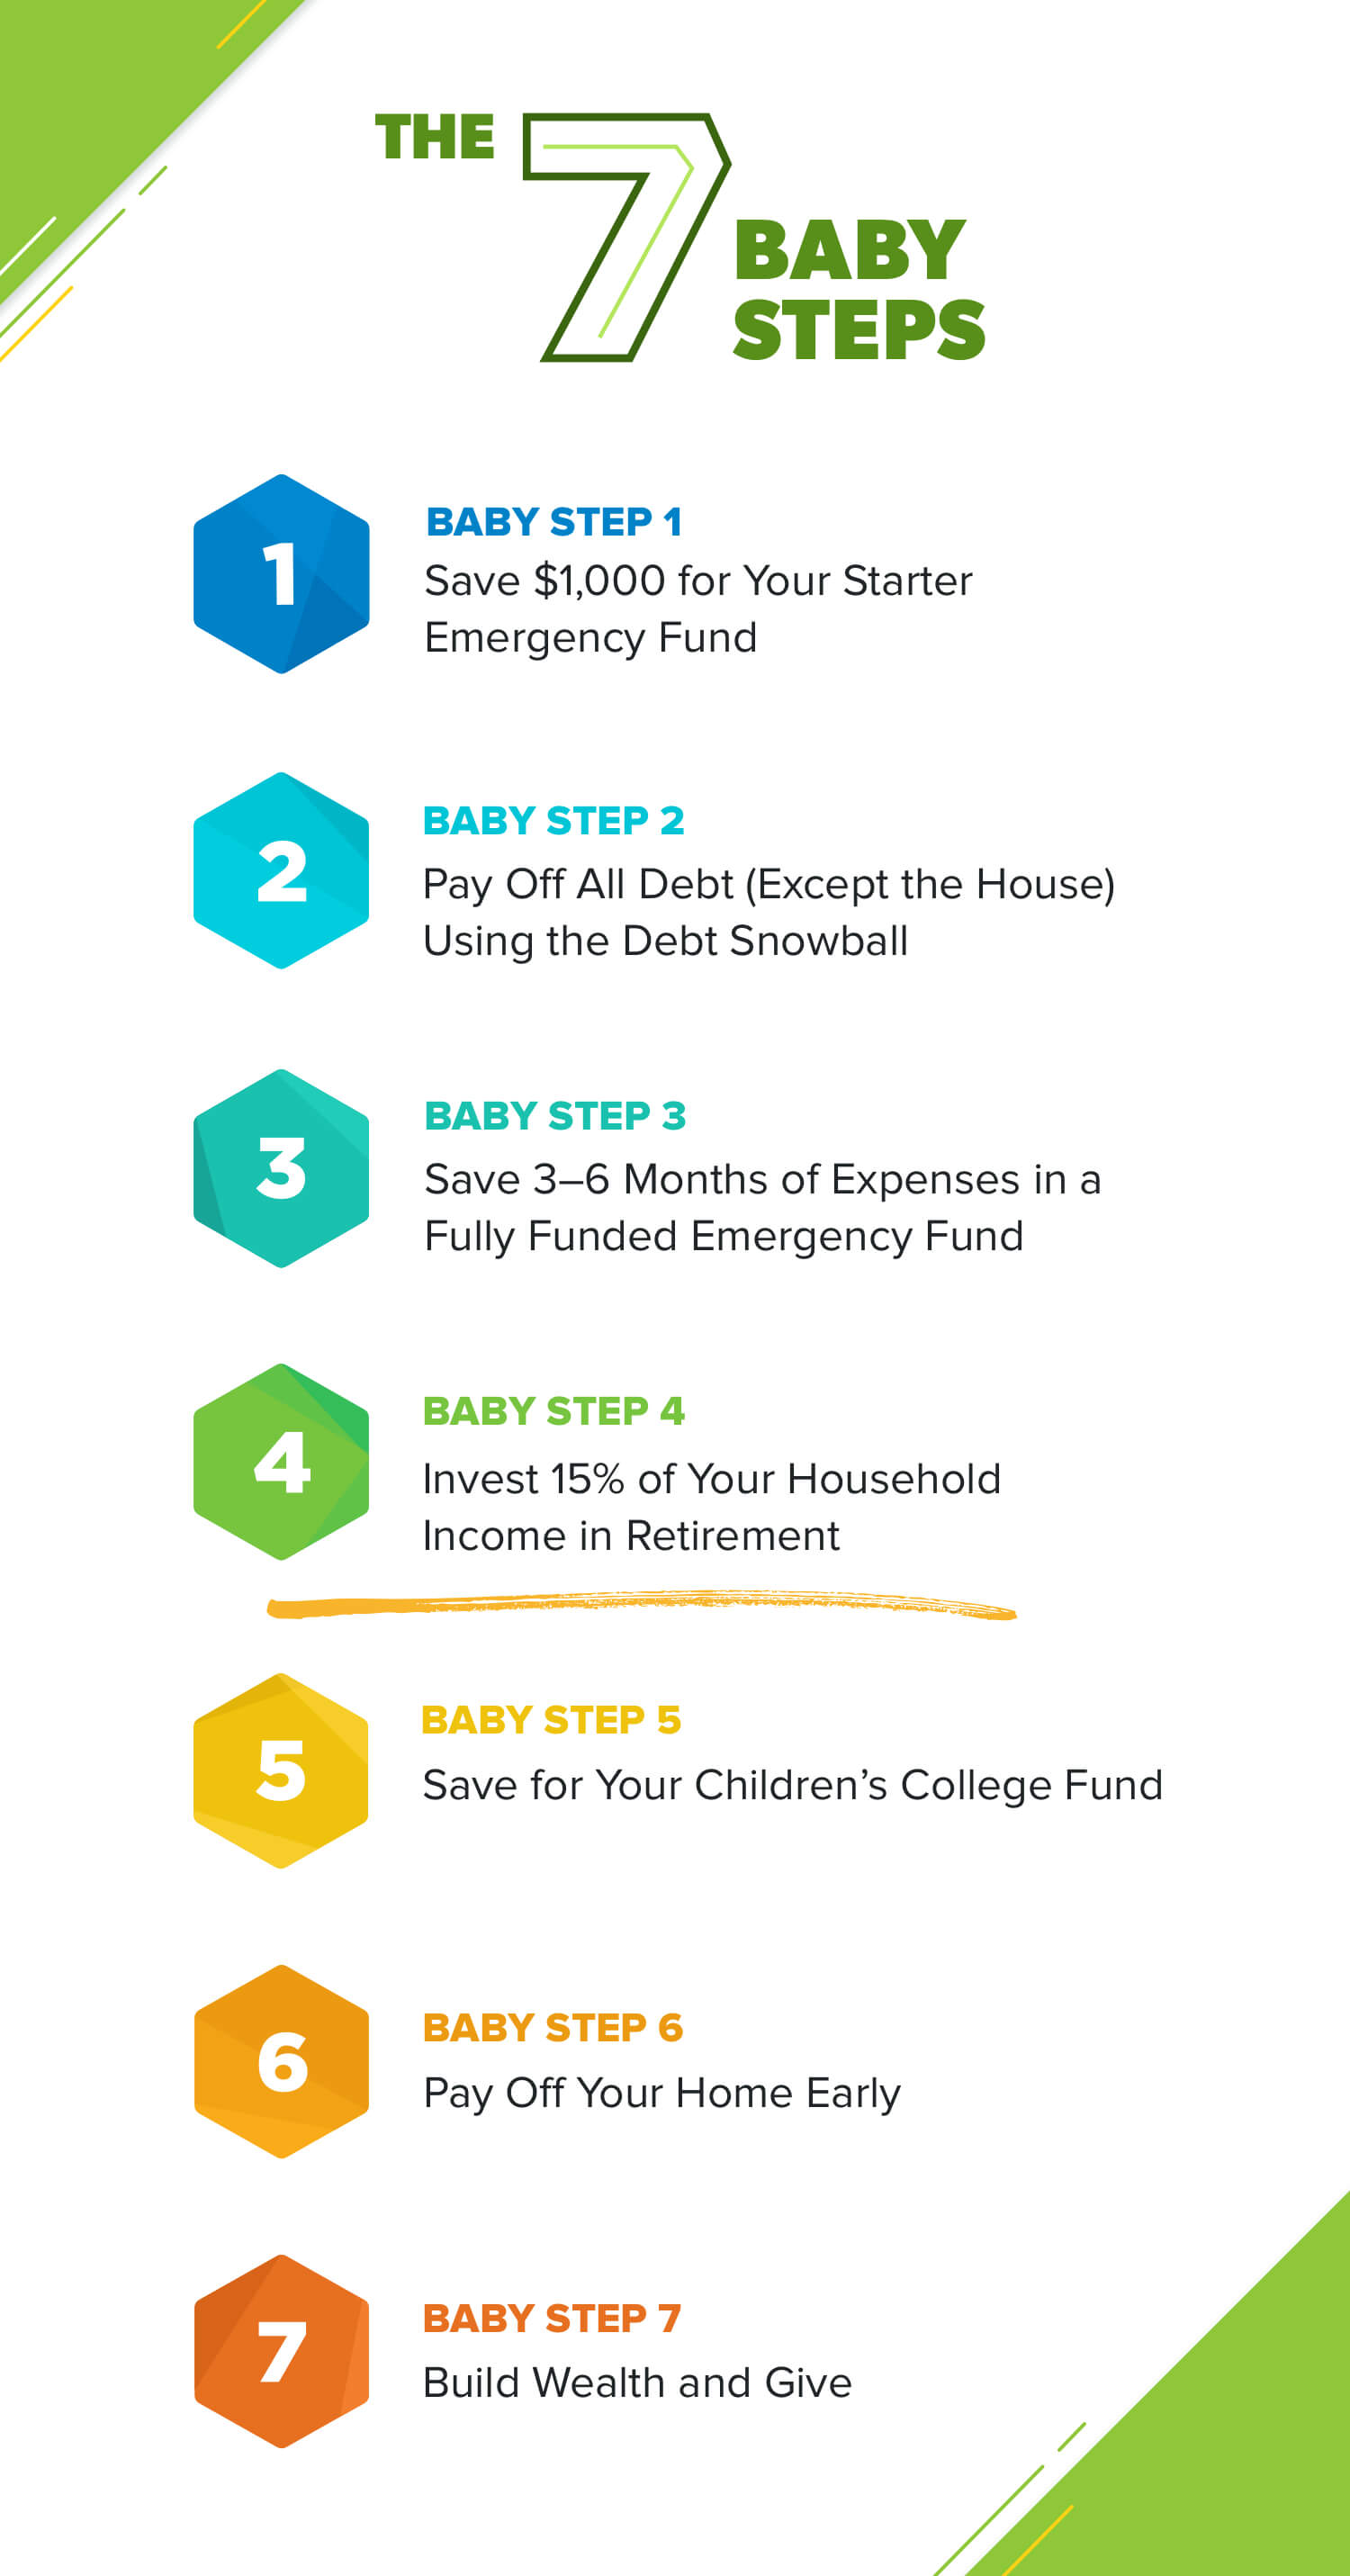 Before investing in Retirement, follow the first 4 Baby Steps